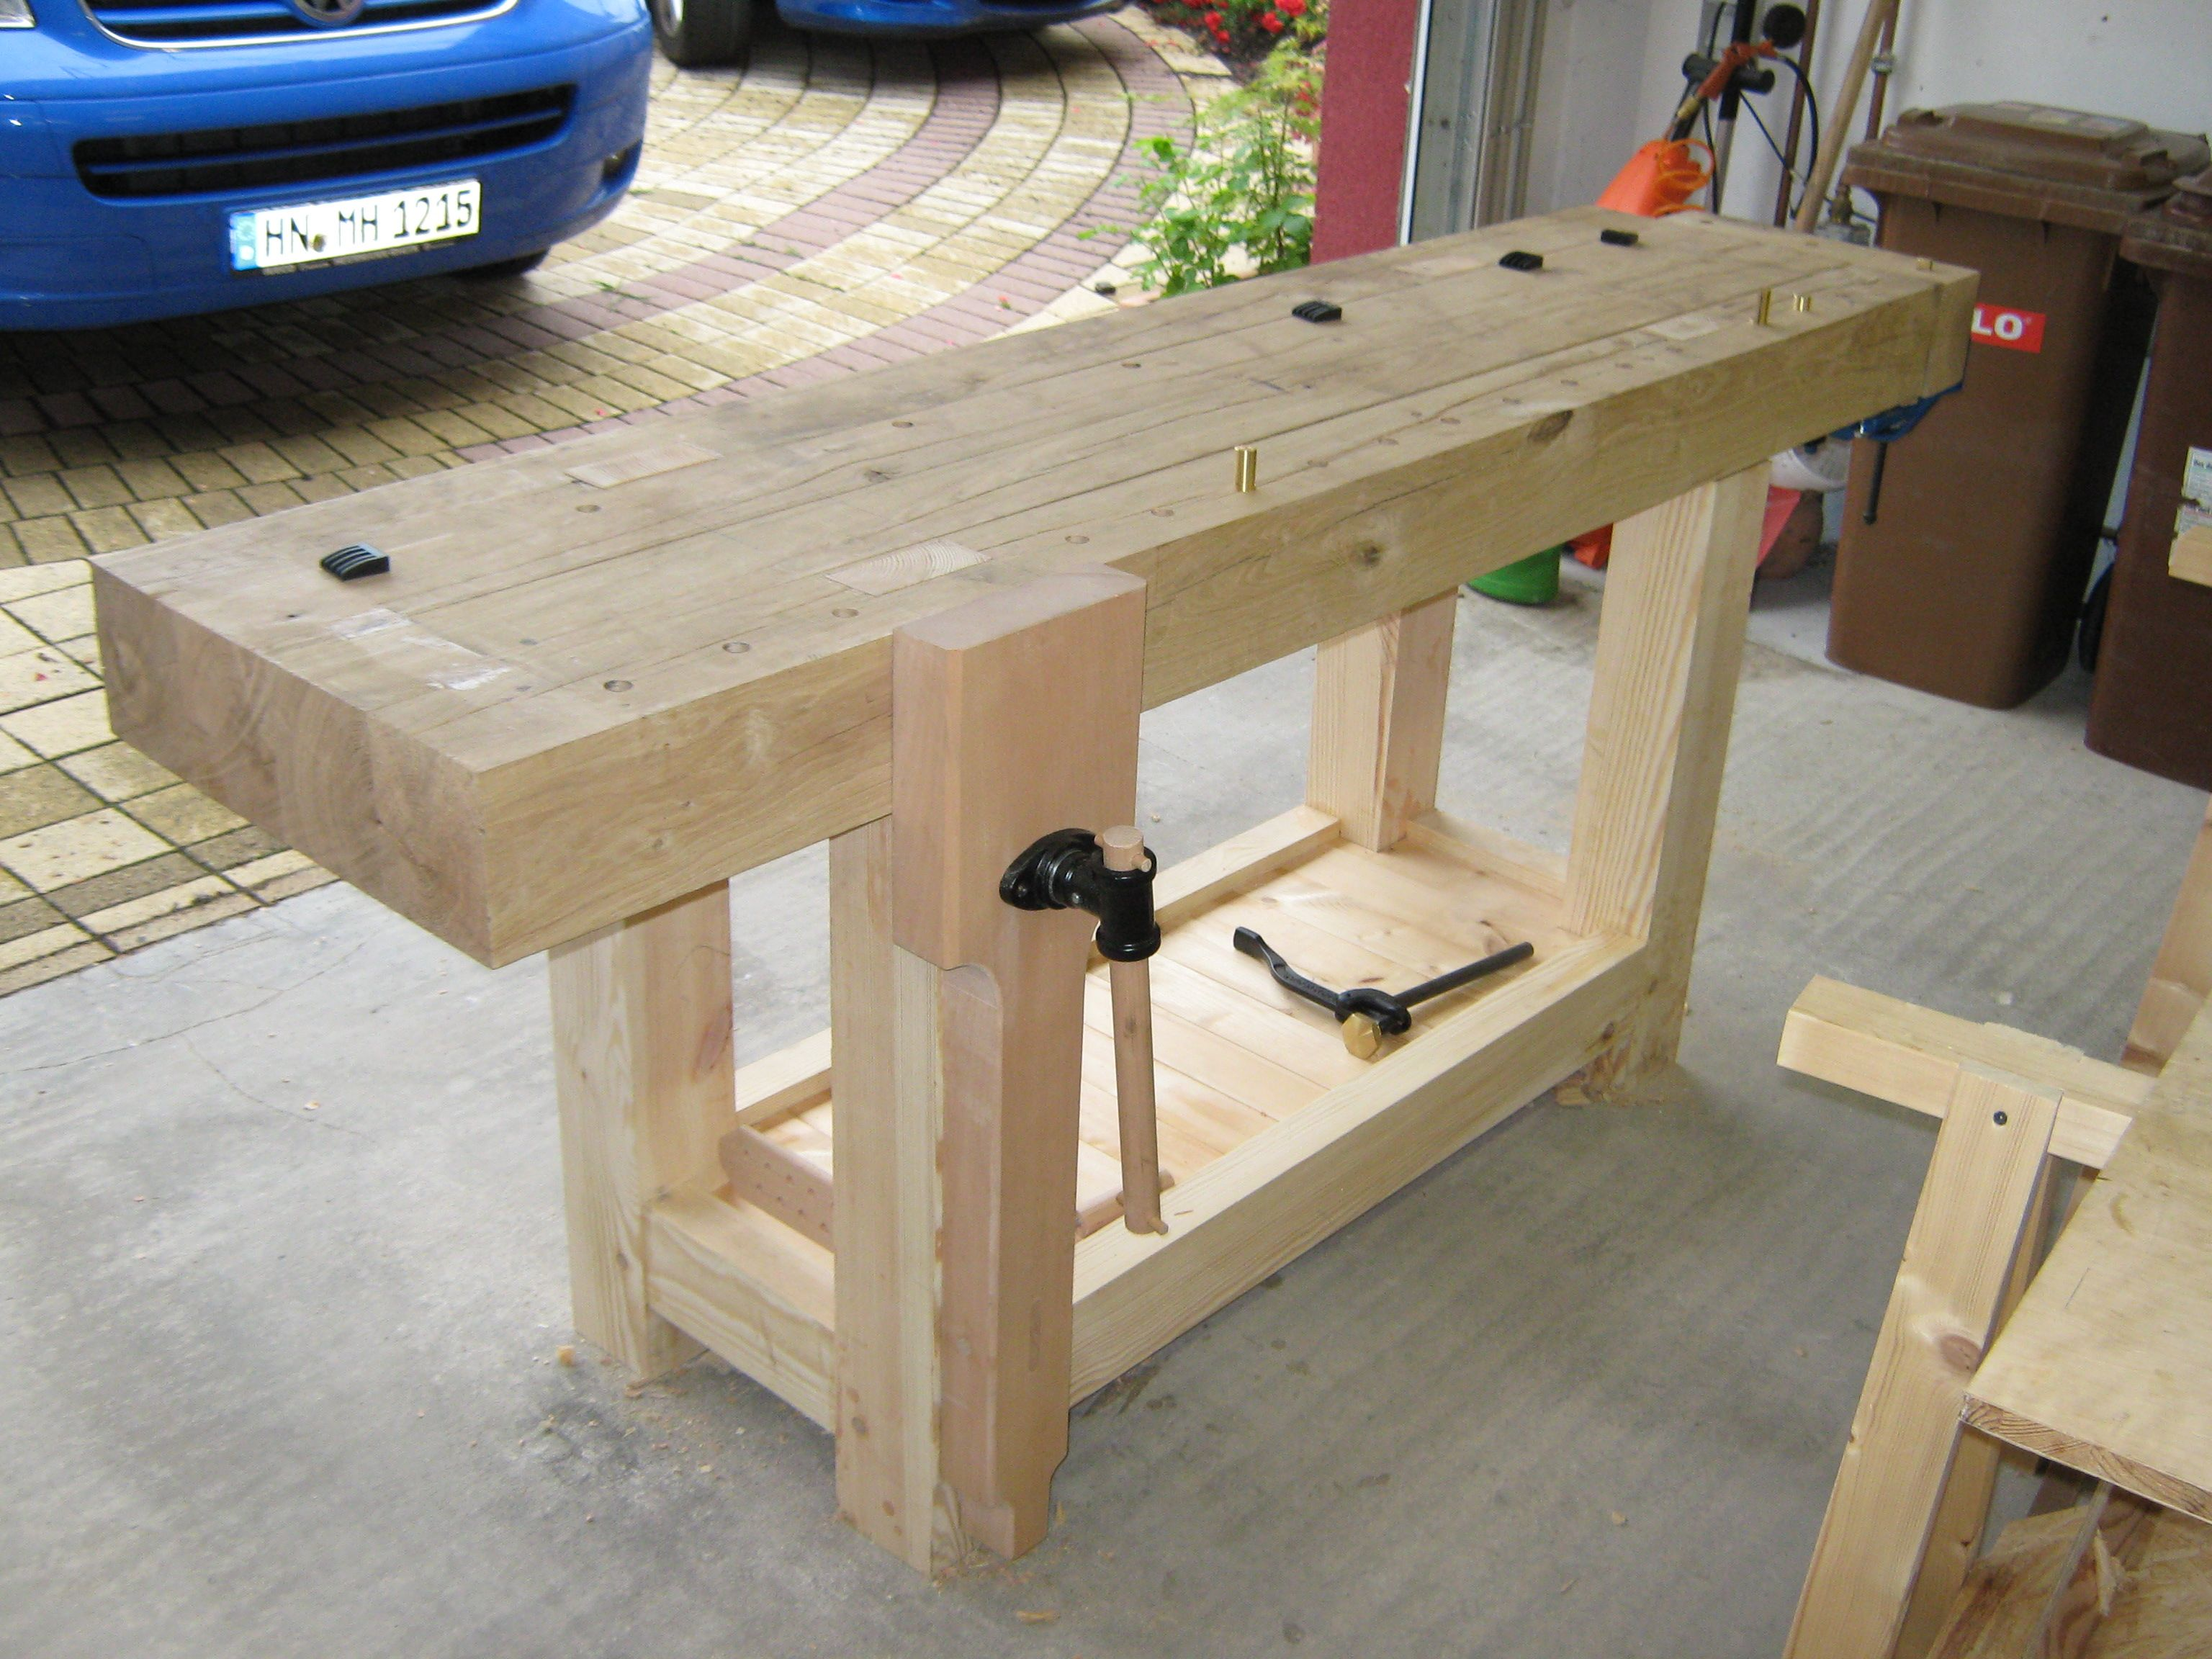 Building a Workbench – Fertigstellung der Hobelbank Teil 3 ...